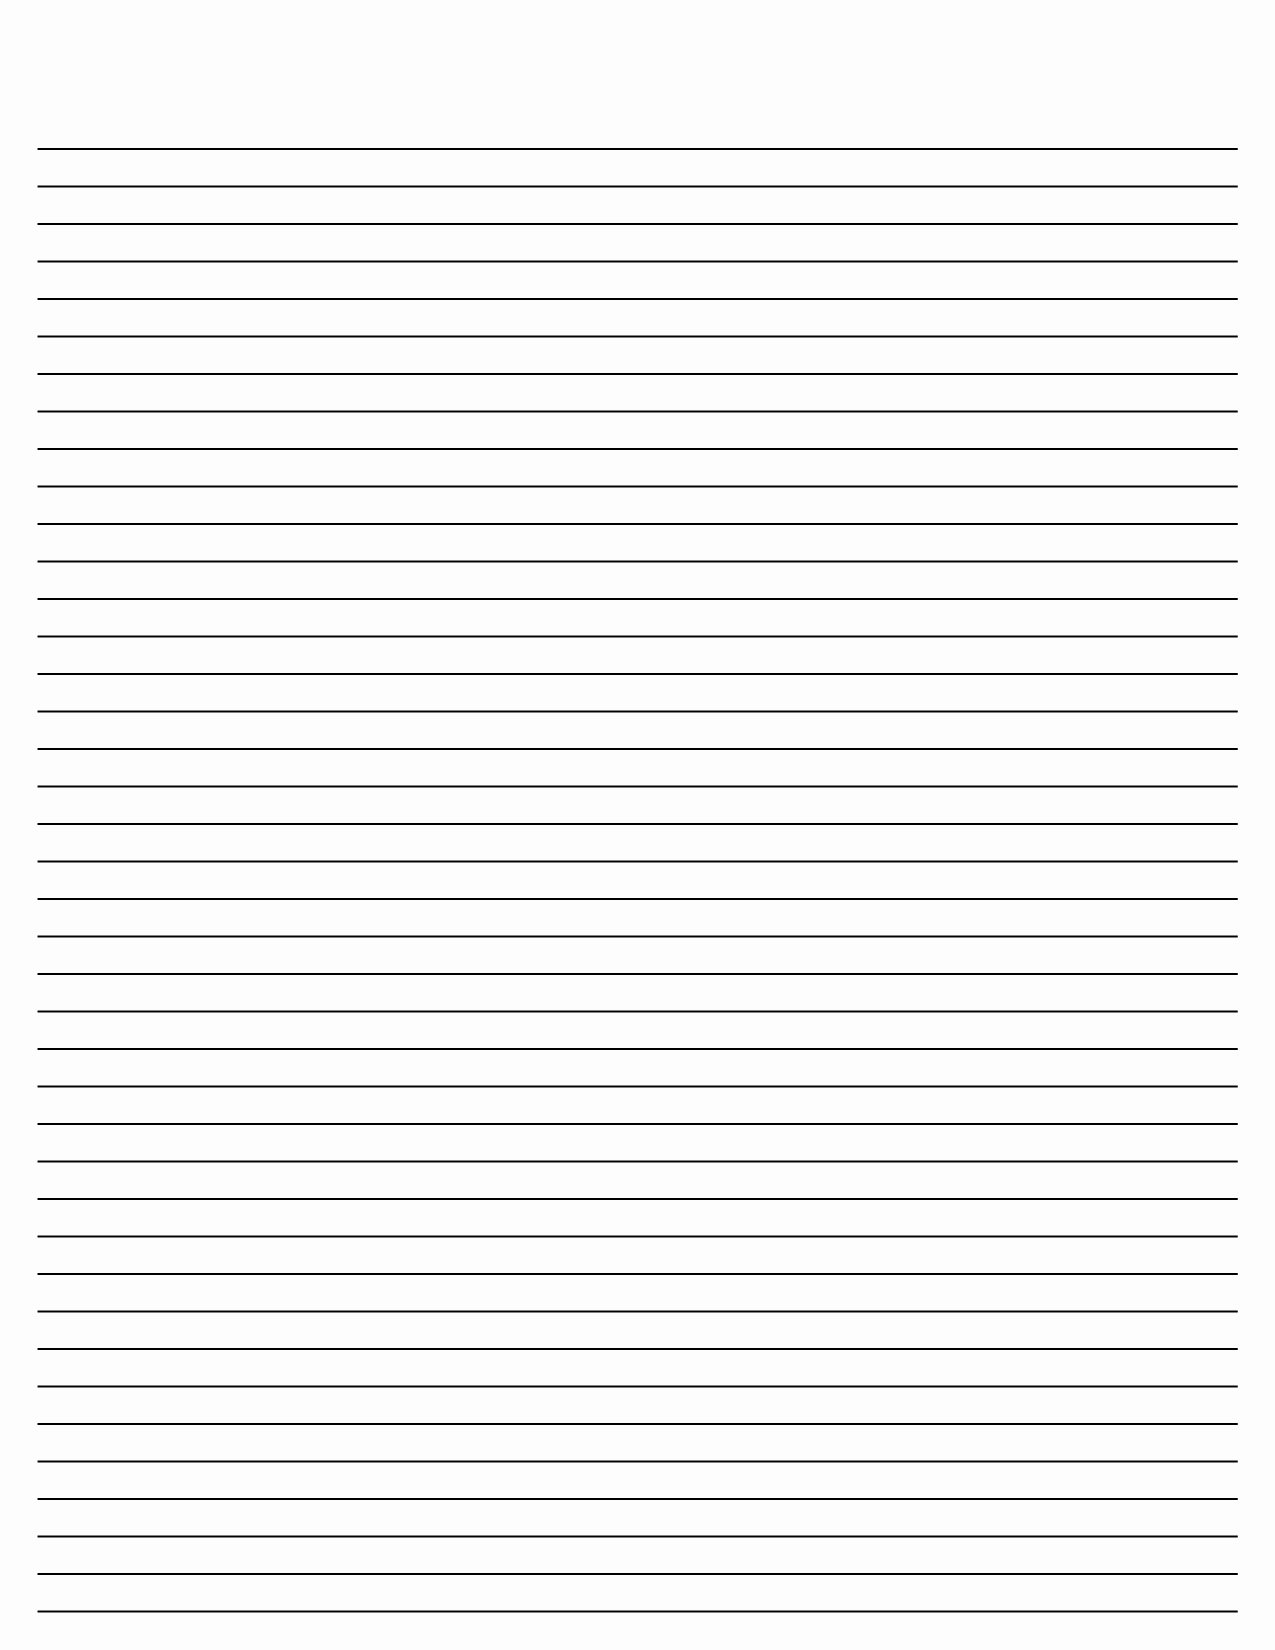 9 Best Of Printable Journal Paper with Lines Free